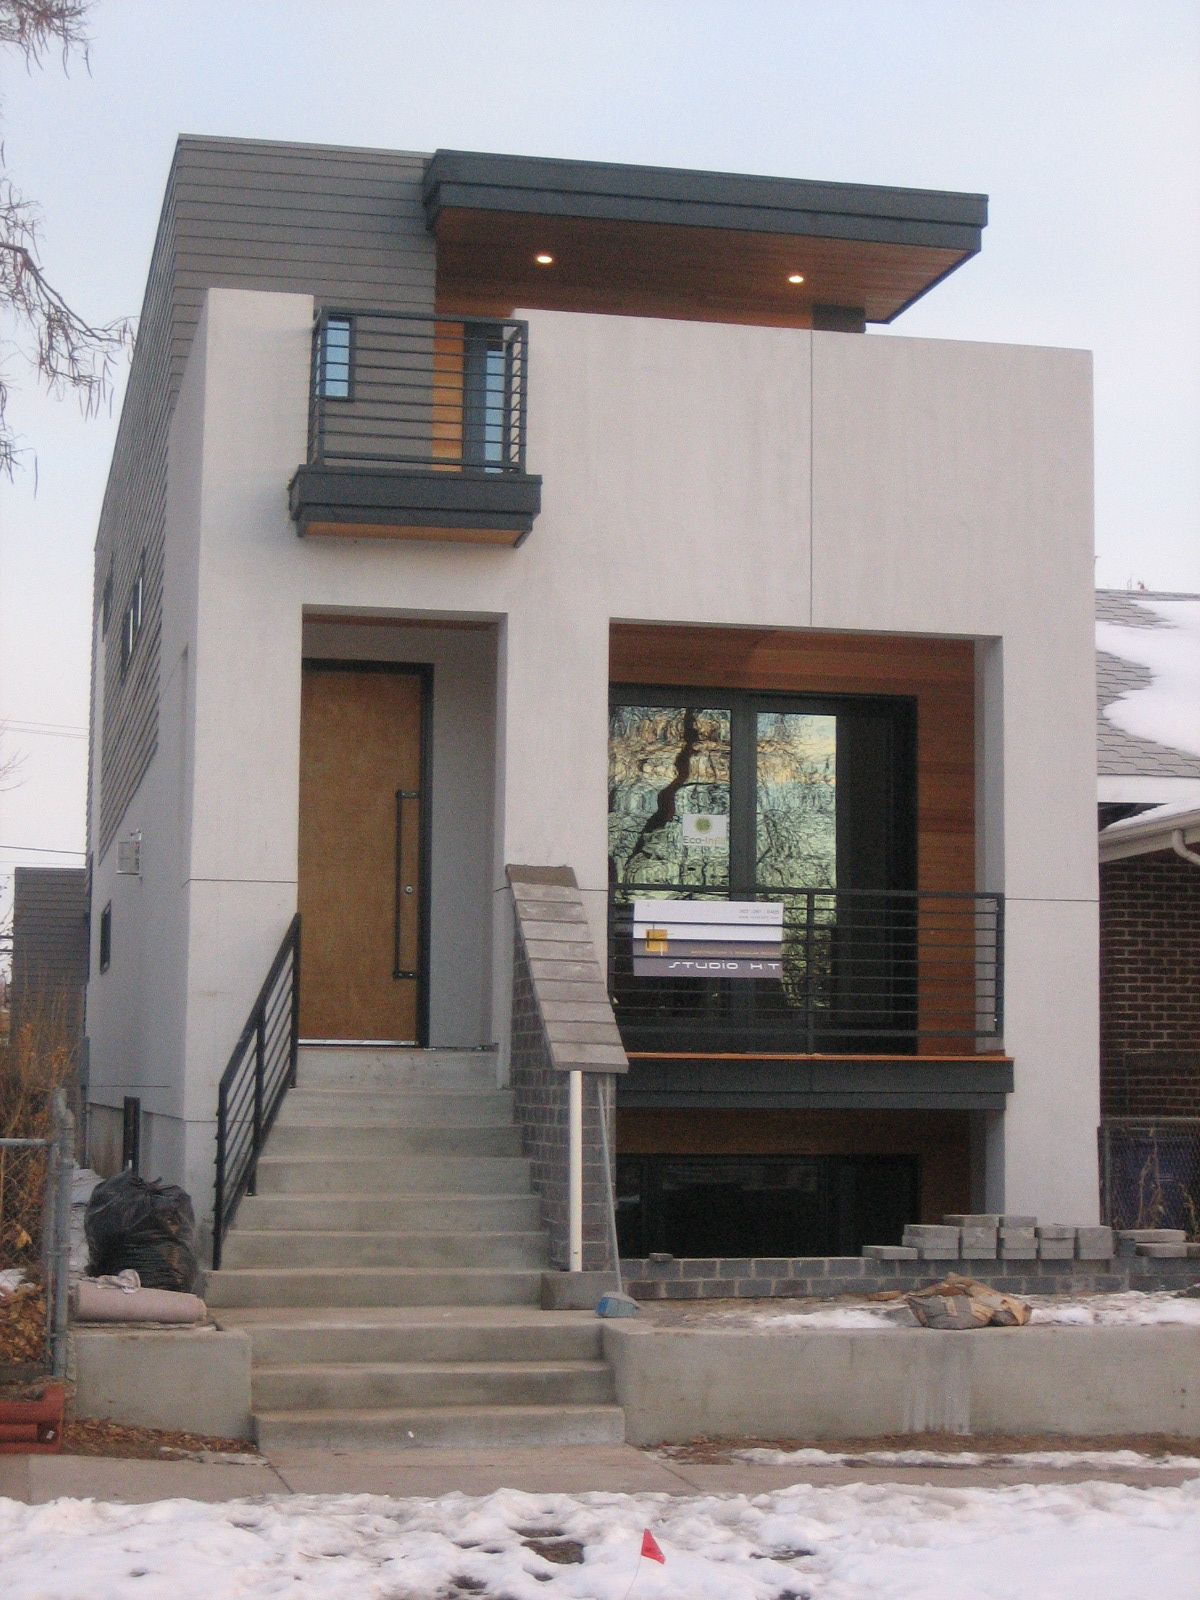 Pictures Of Small Modern Houses Best Of Small Modern House Design with White Wa Using